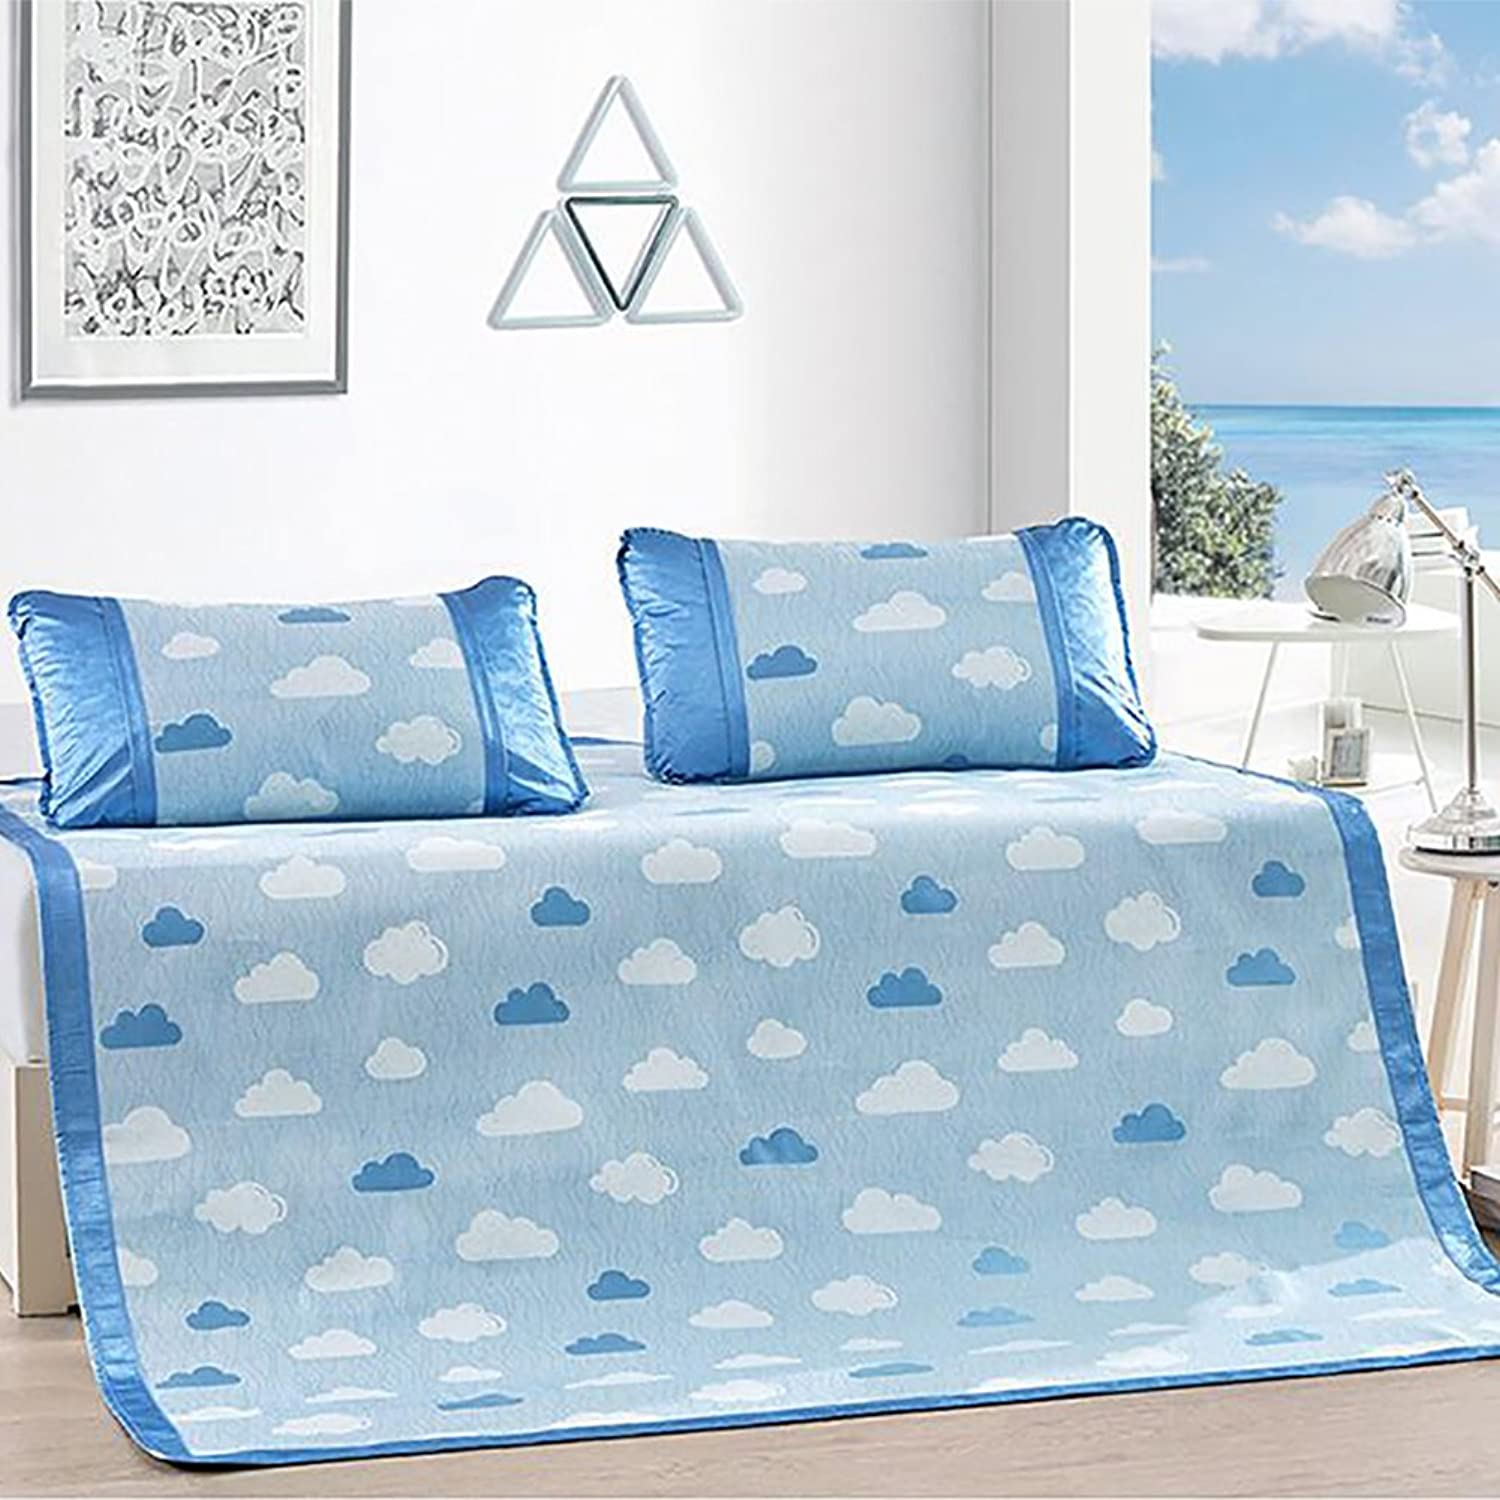 Plant Flowers Summer Mattress,European Luxury Cool pad Summer Sleeping mat Mattress Topper air Condition seat -A 150  200cm(59x79inch)